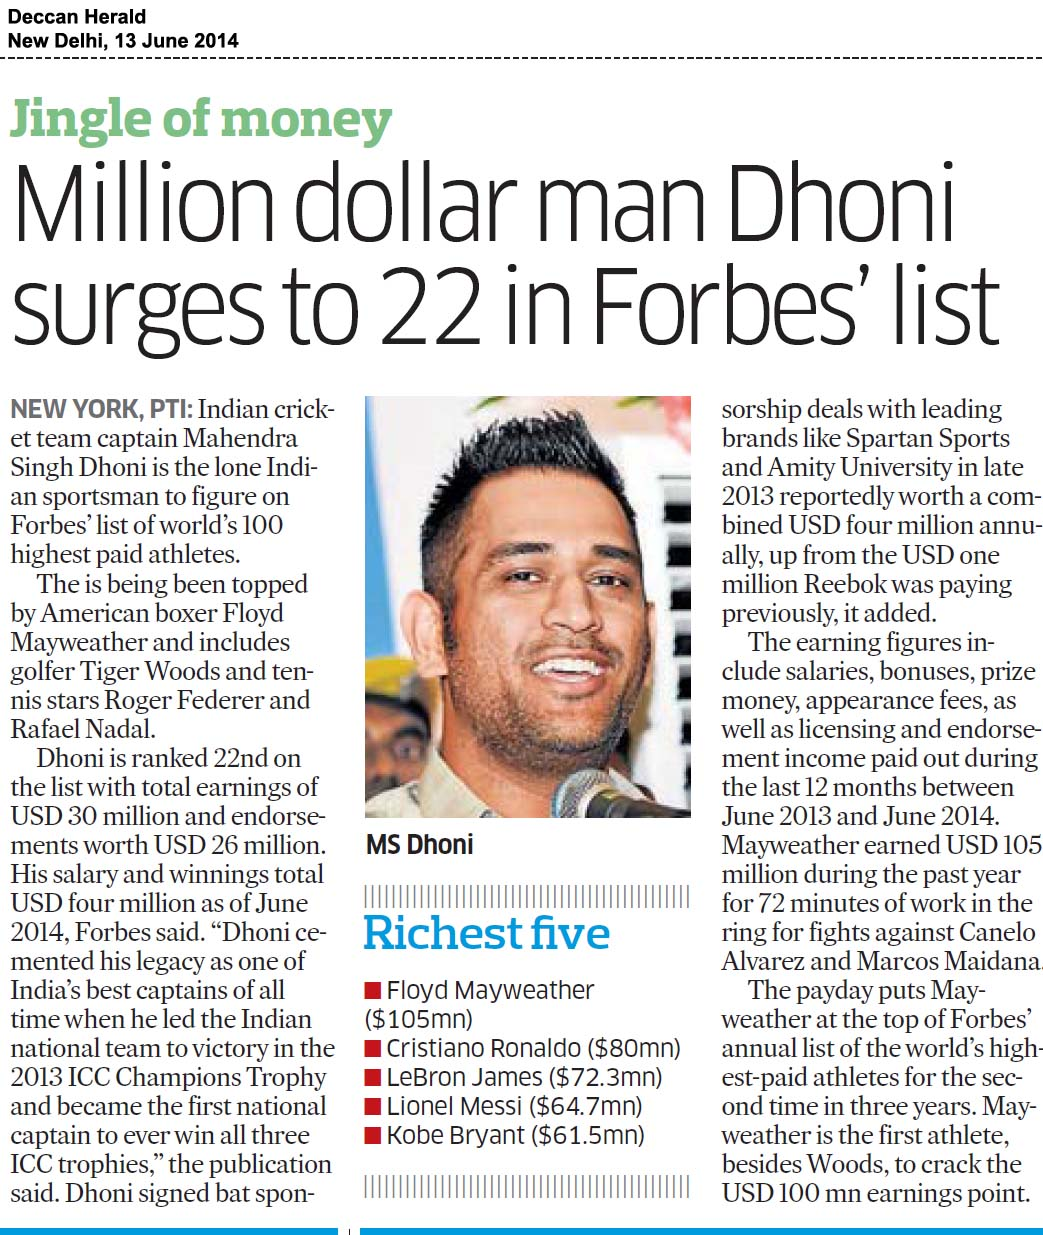 Million dollar man Dhoni surges to 22 in ForbesÆ list